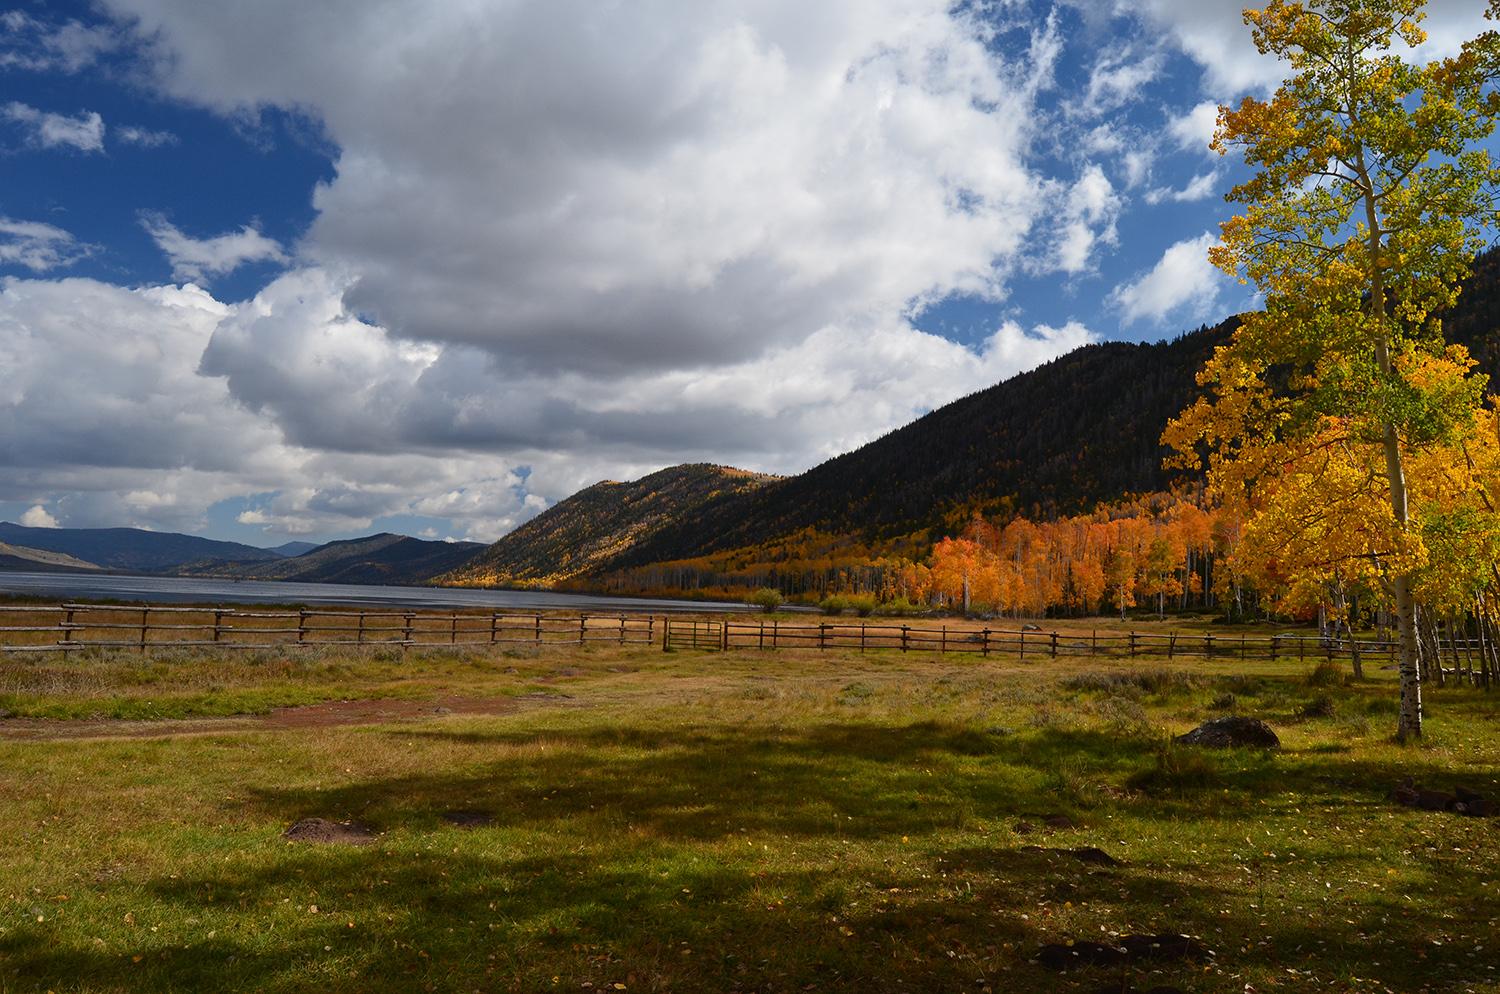 Image with a lake in the middle and aspen in fall colors on the right